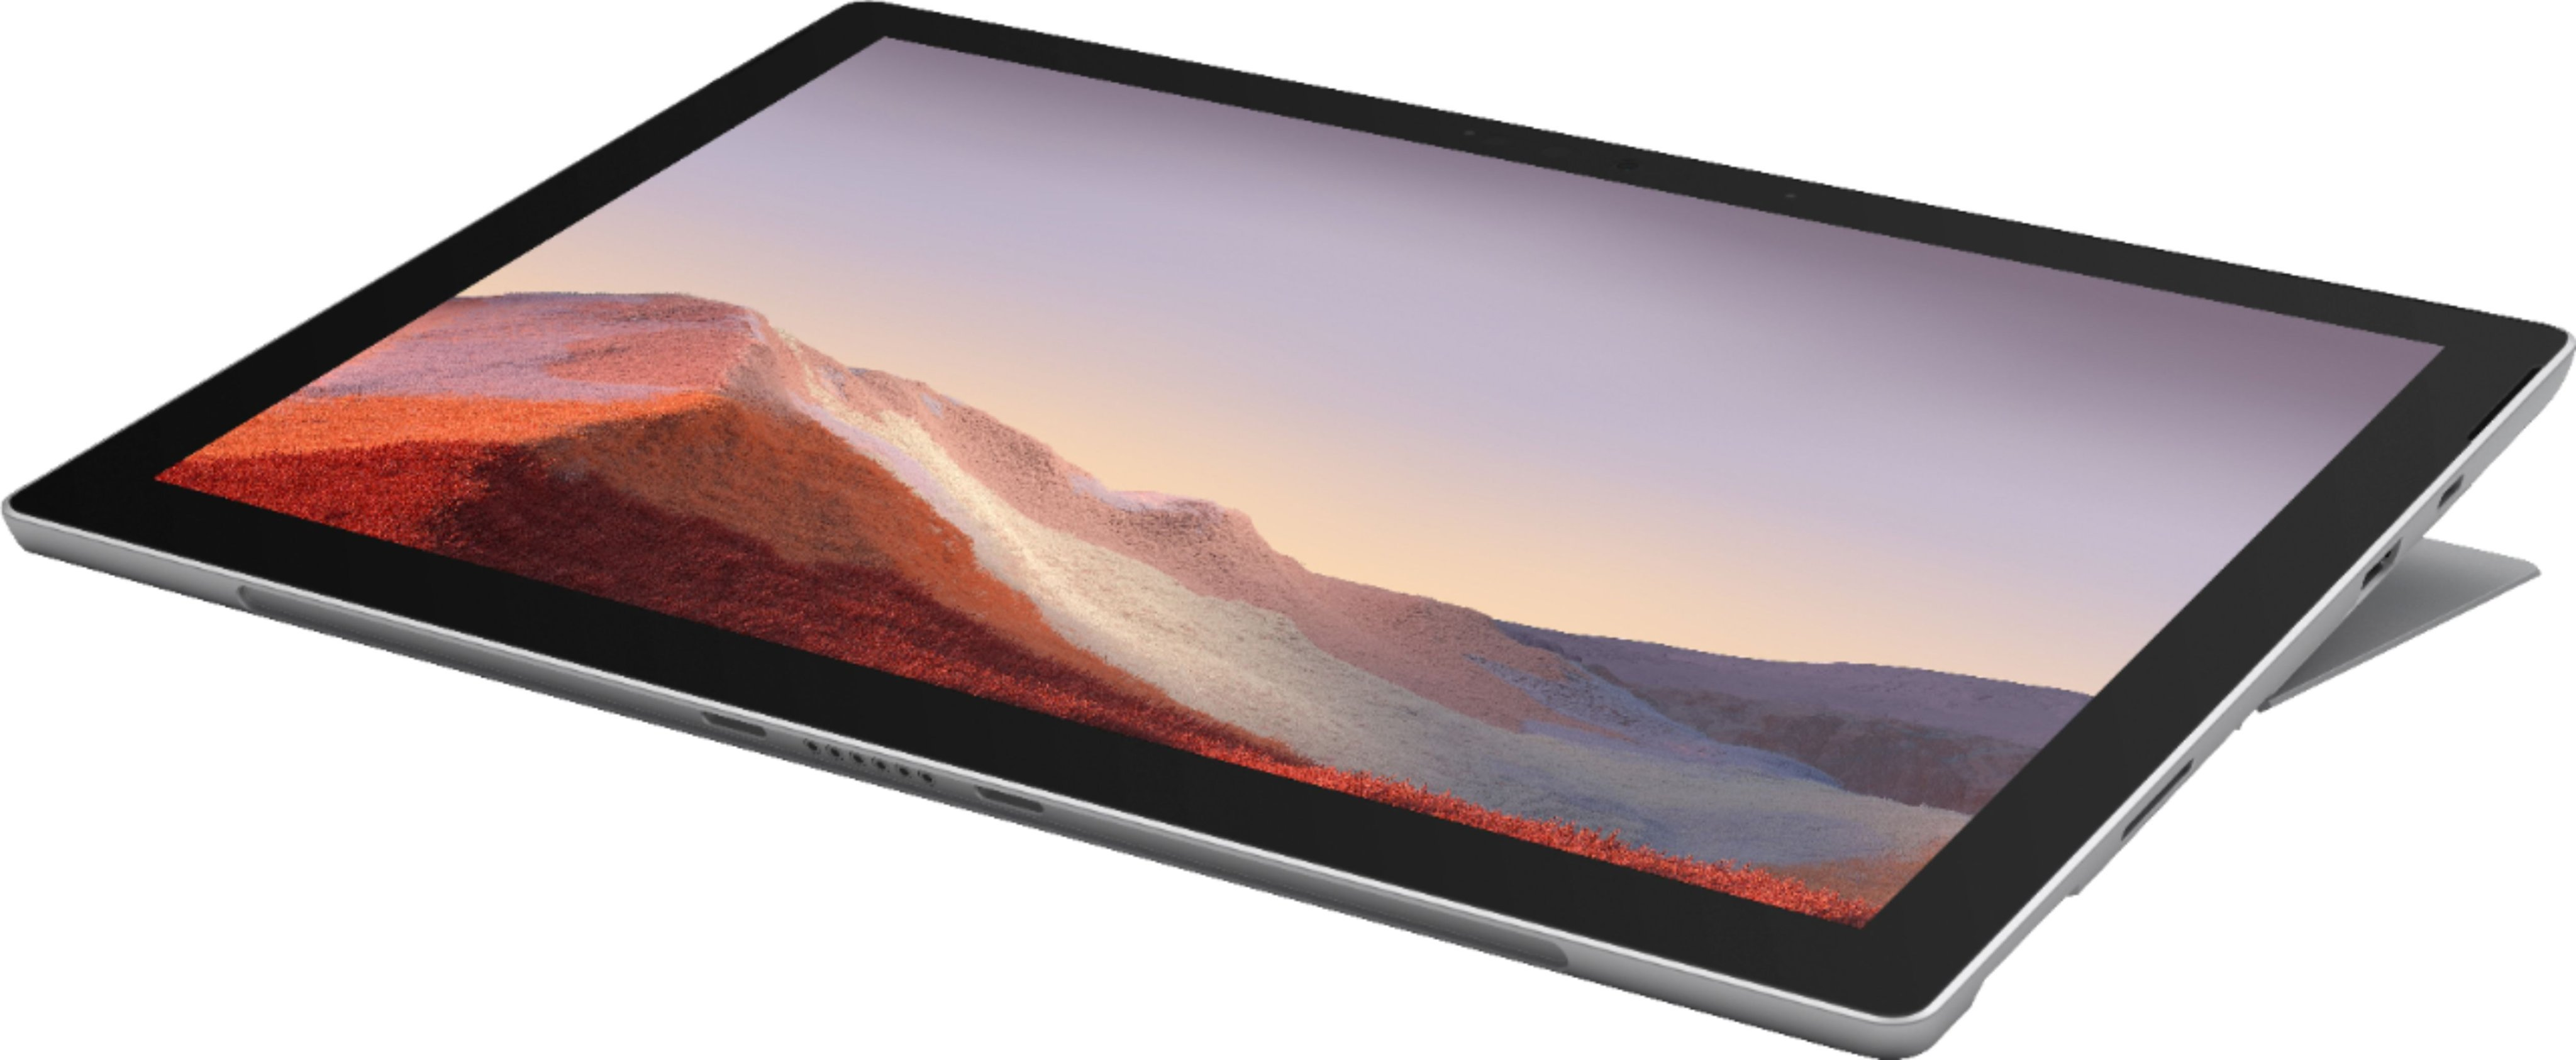 Surface event roundup: Here is everything that Microsoft has announced today at the Surface event 2